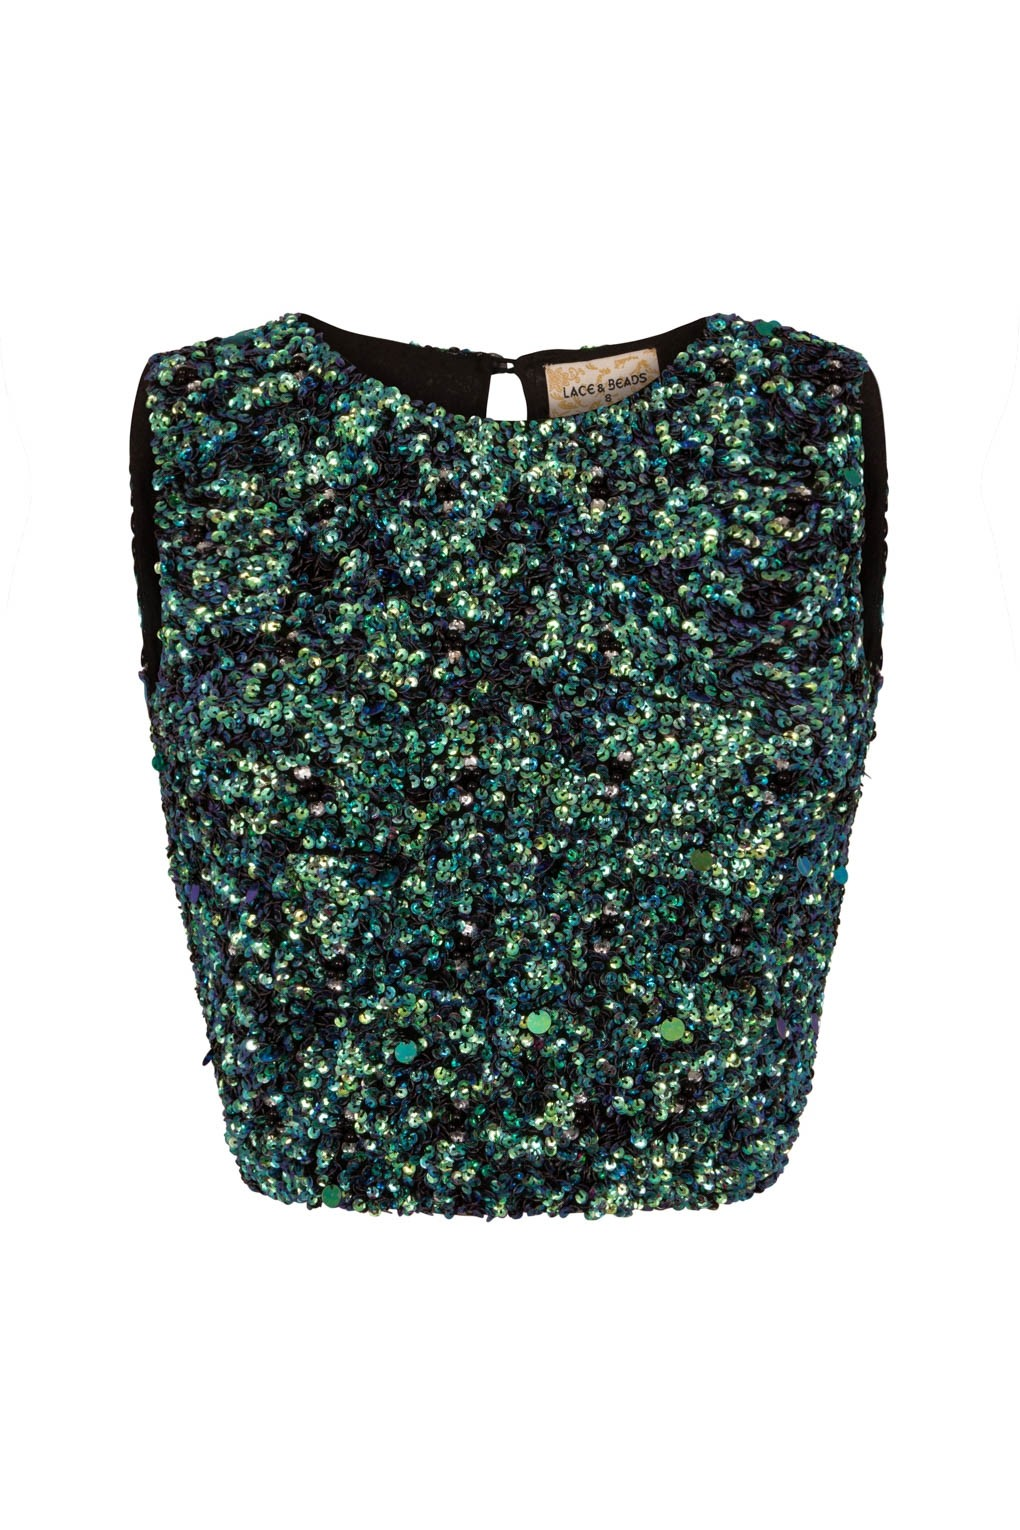 lace beads picasso mermaid green sequin top lace beads tops. Black Bedroom Furniture Sets. Home Design Ideas